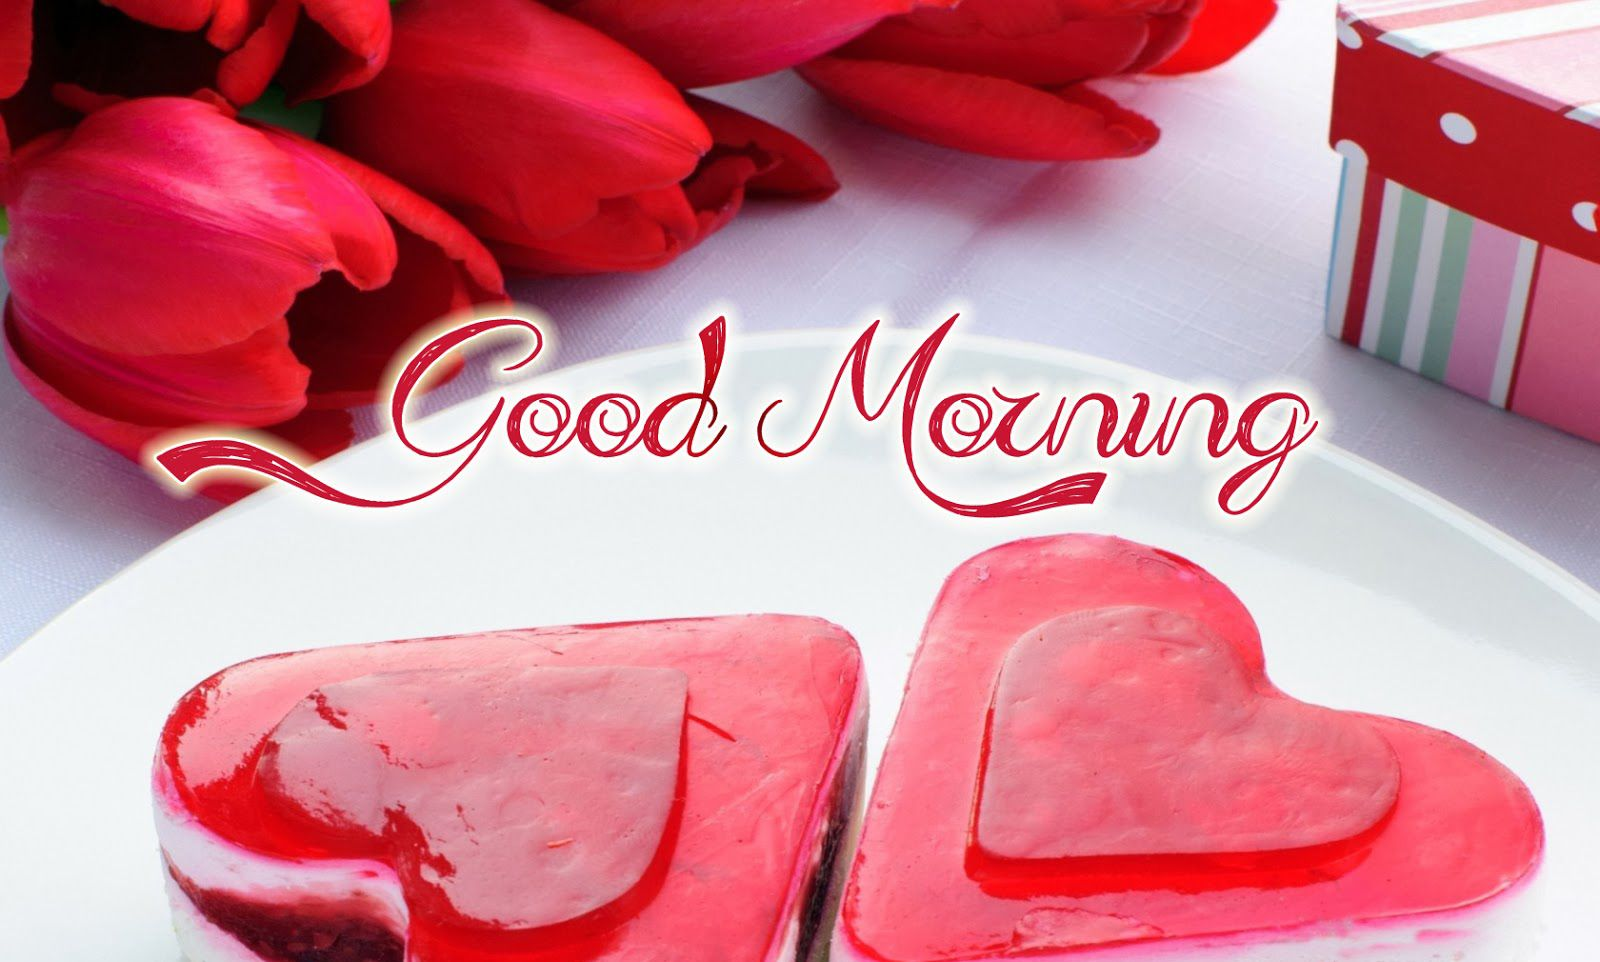 Download Wallpaper Love Morning - 83d0adaa01c97be03b538dae6b658d80  You Should Have_584781.jpg